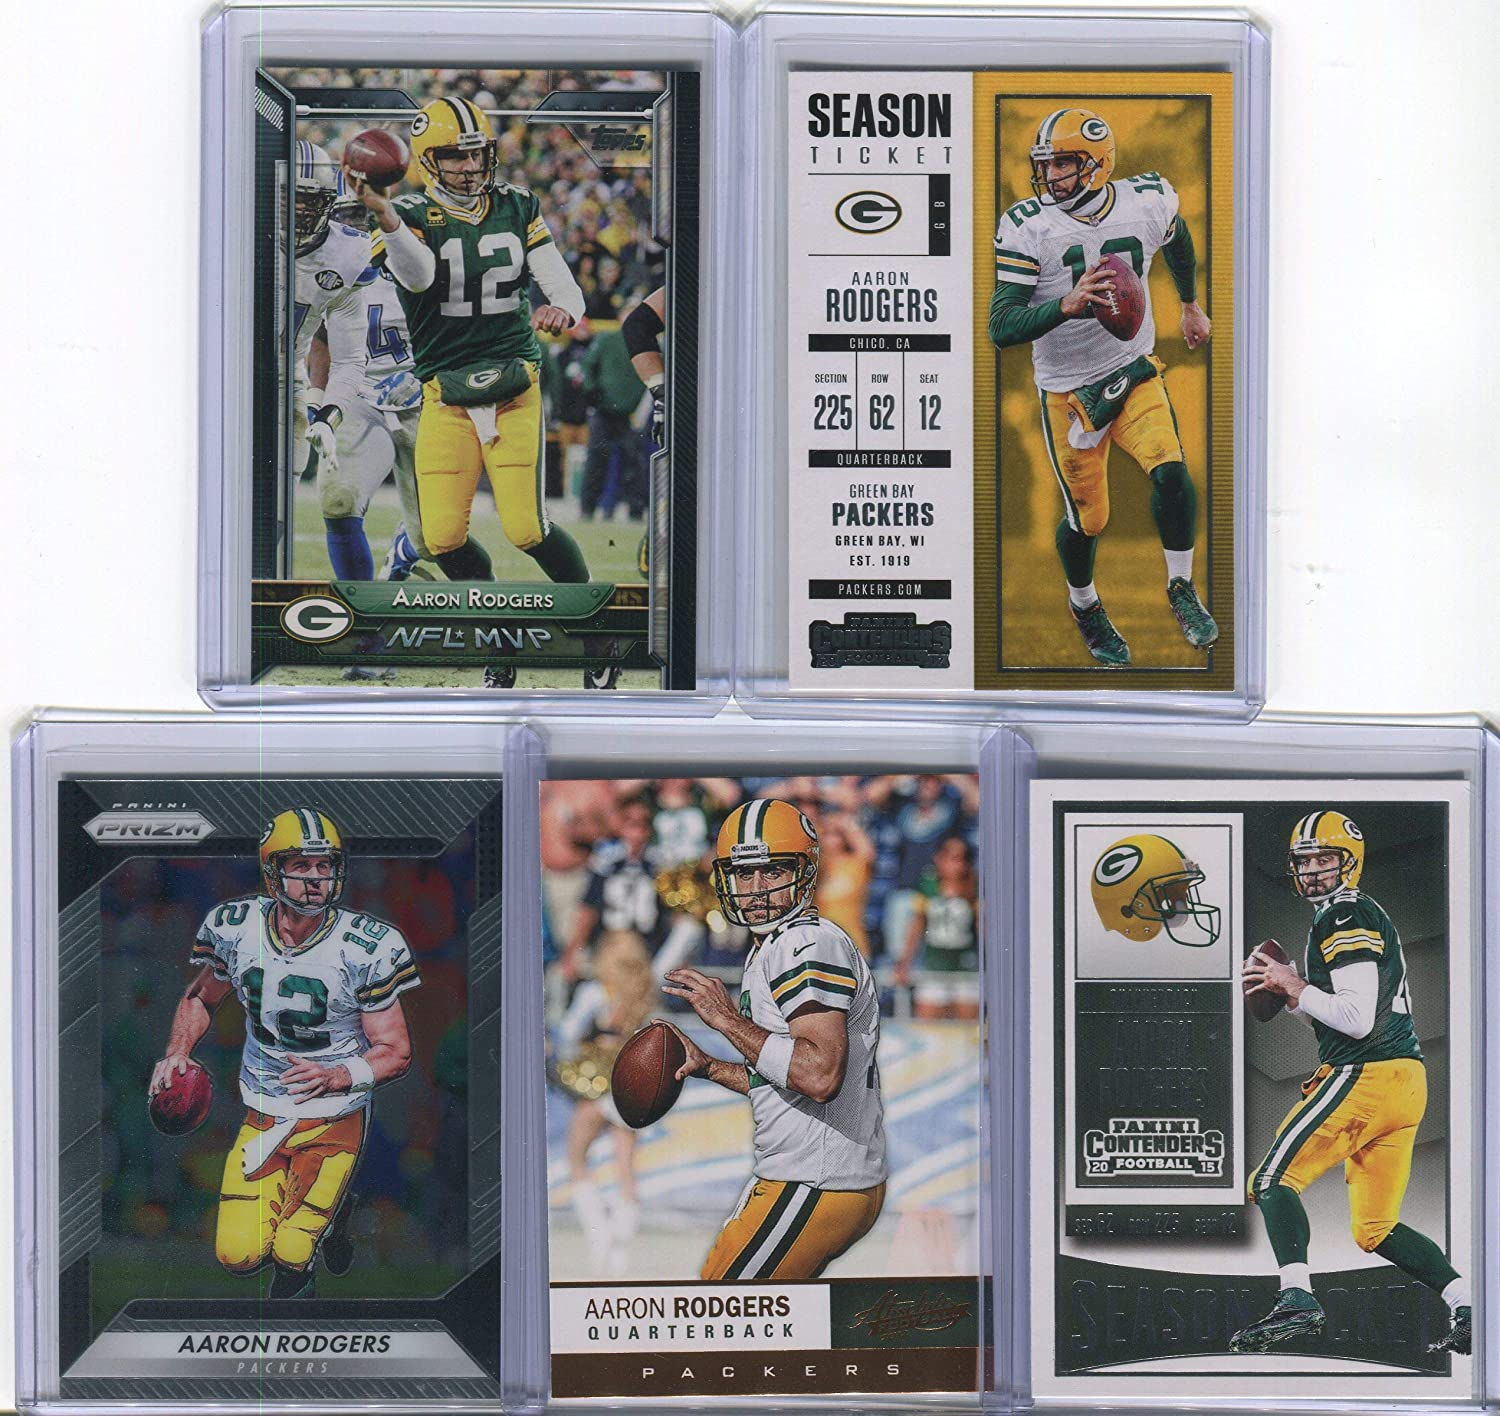 Aaron Rodgers Green Bay Packers Assorted Football Cards 5 Card Lot